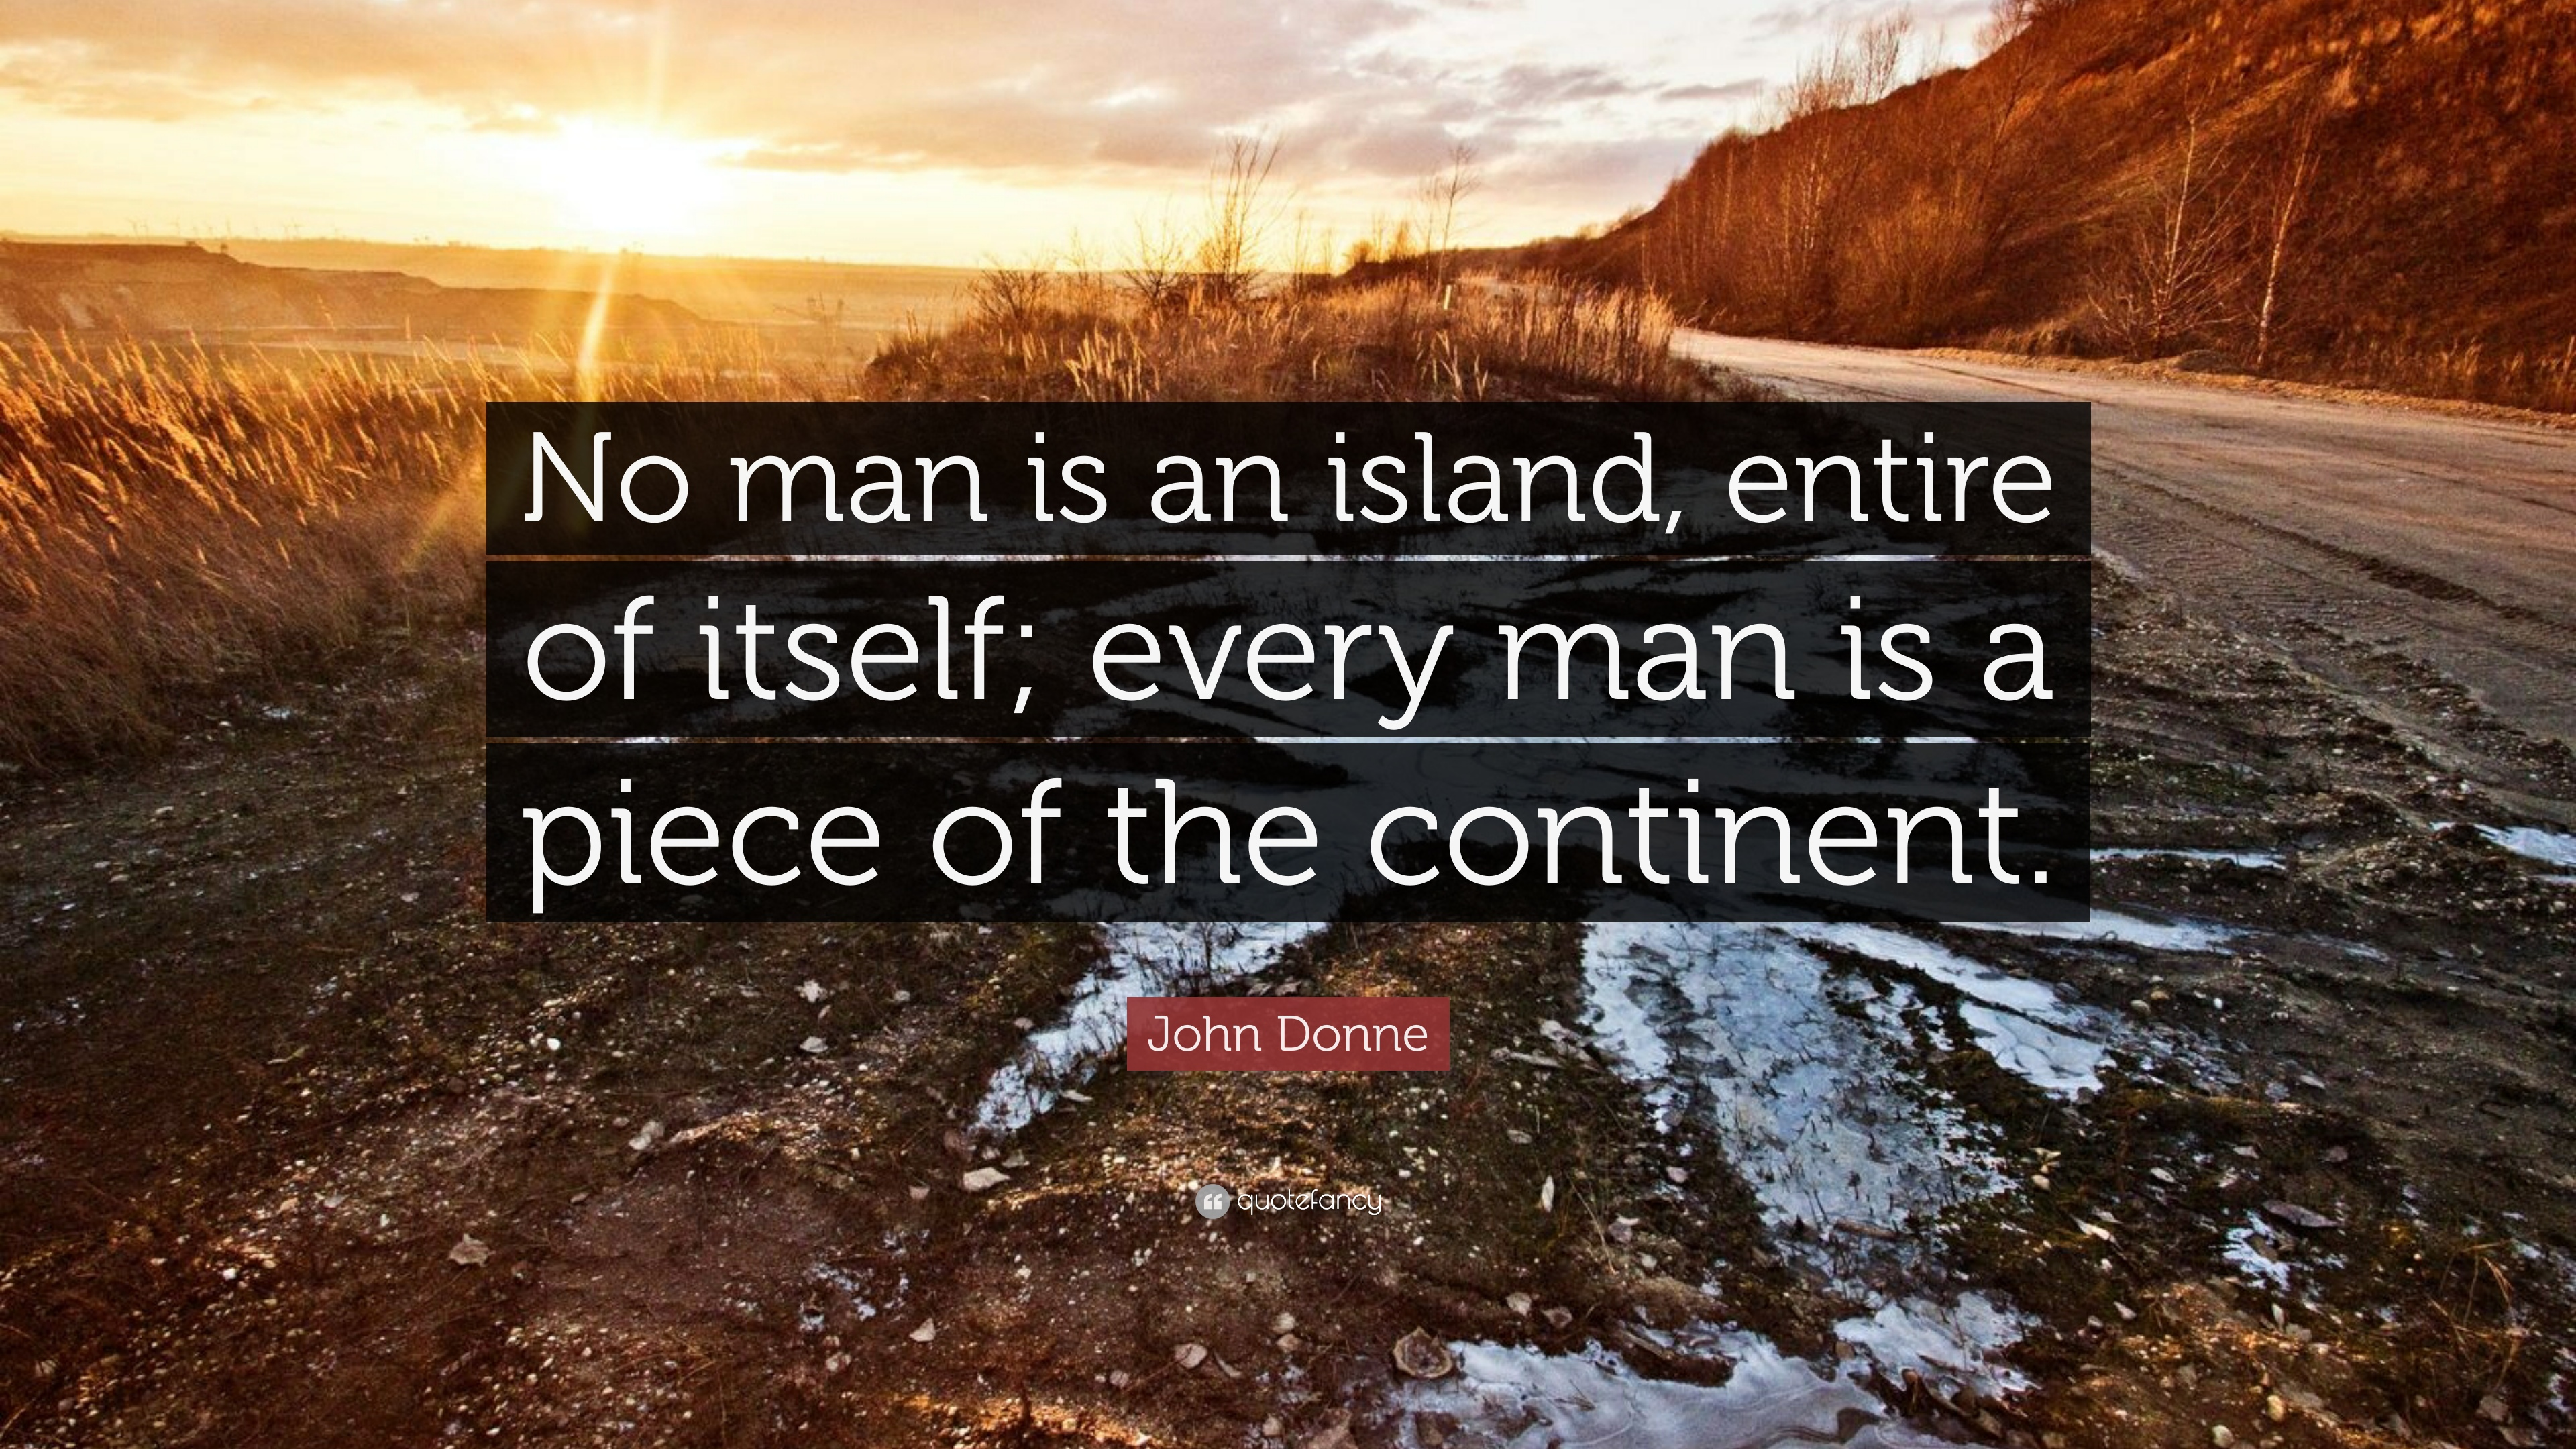 No Man Is An Island - Poem by John Donne